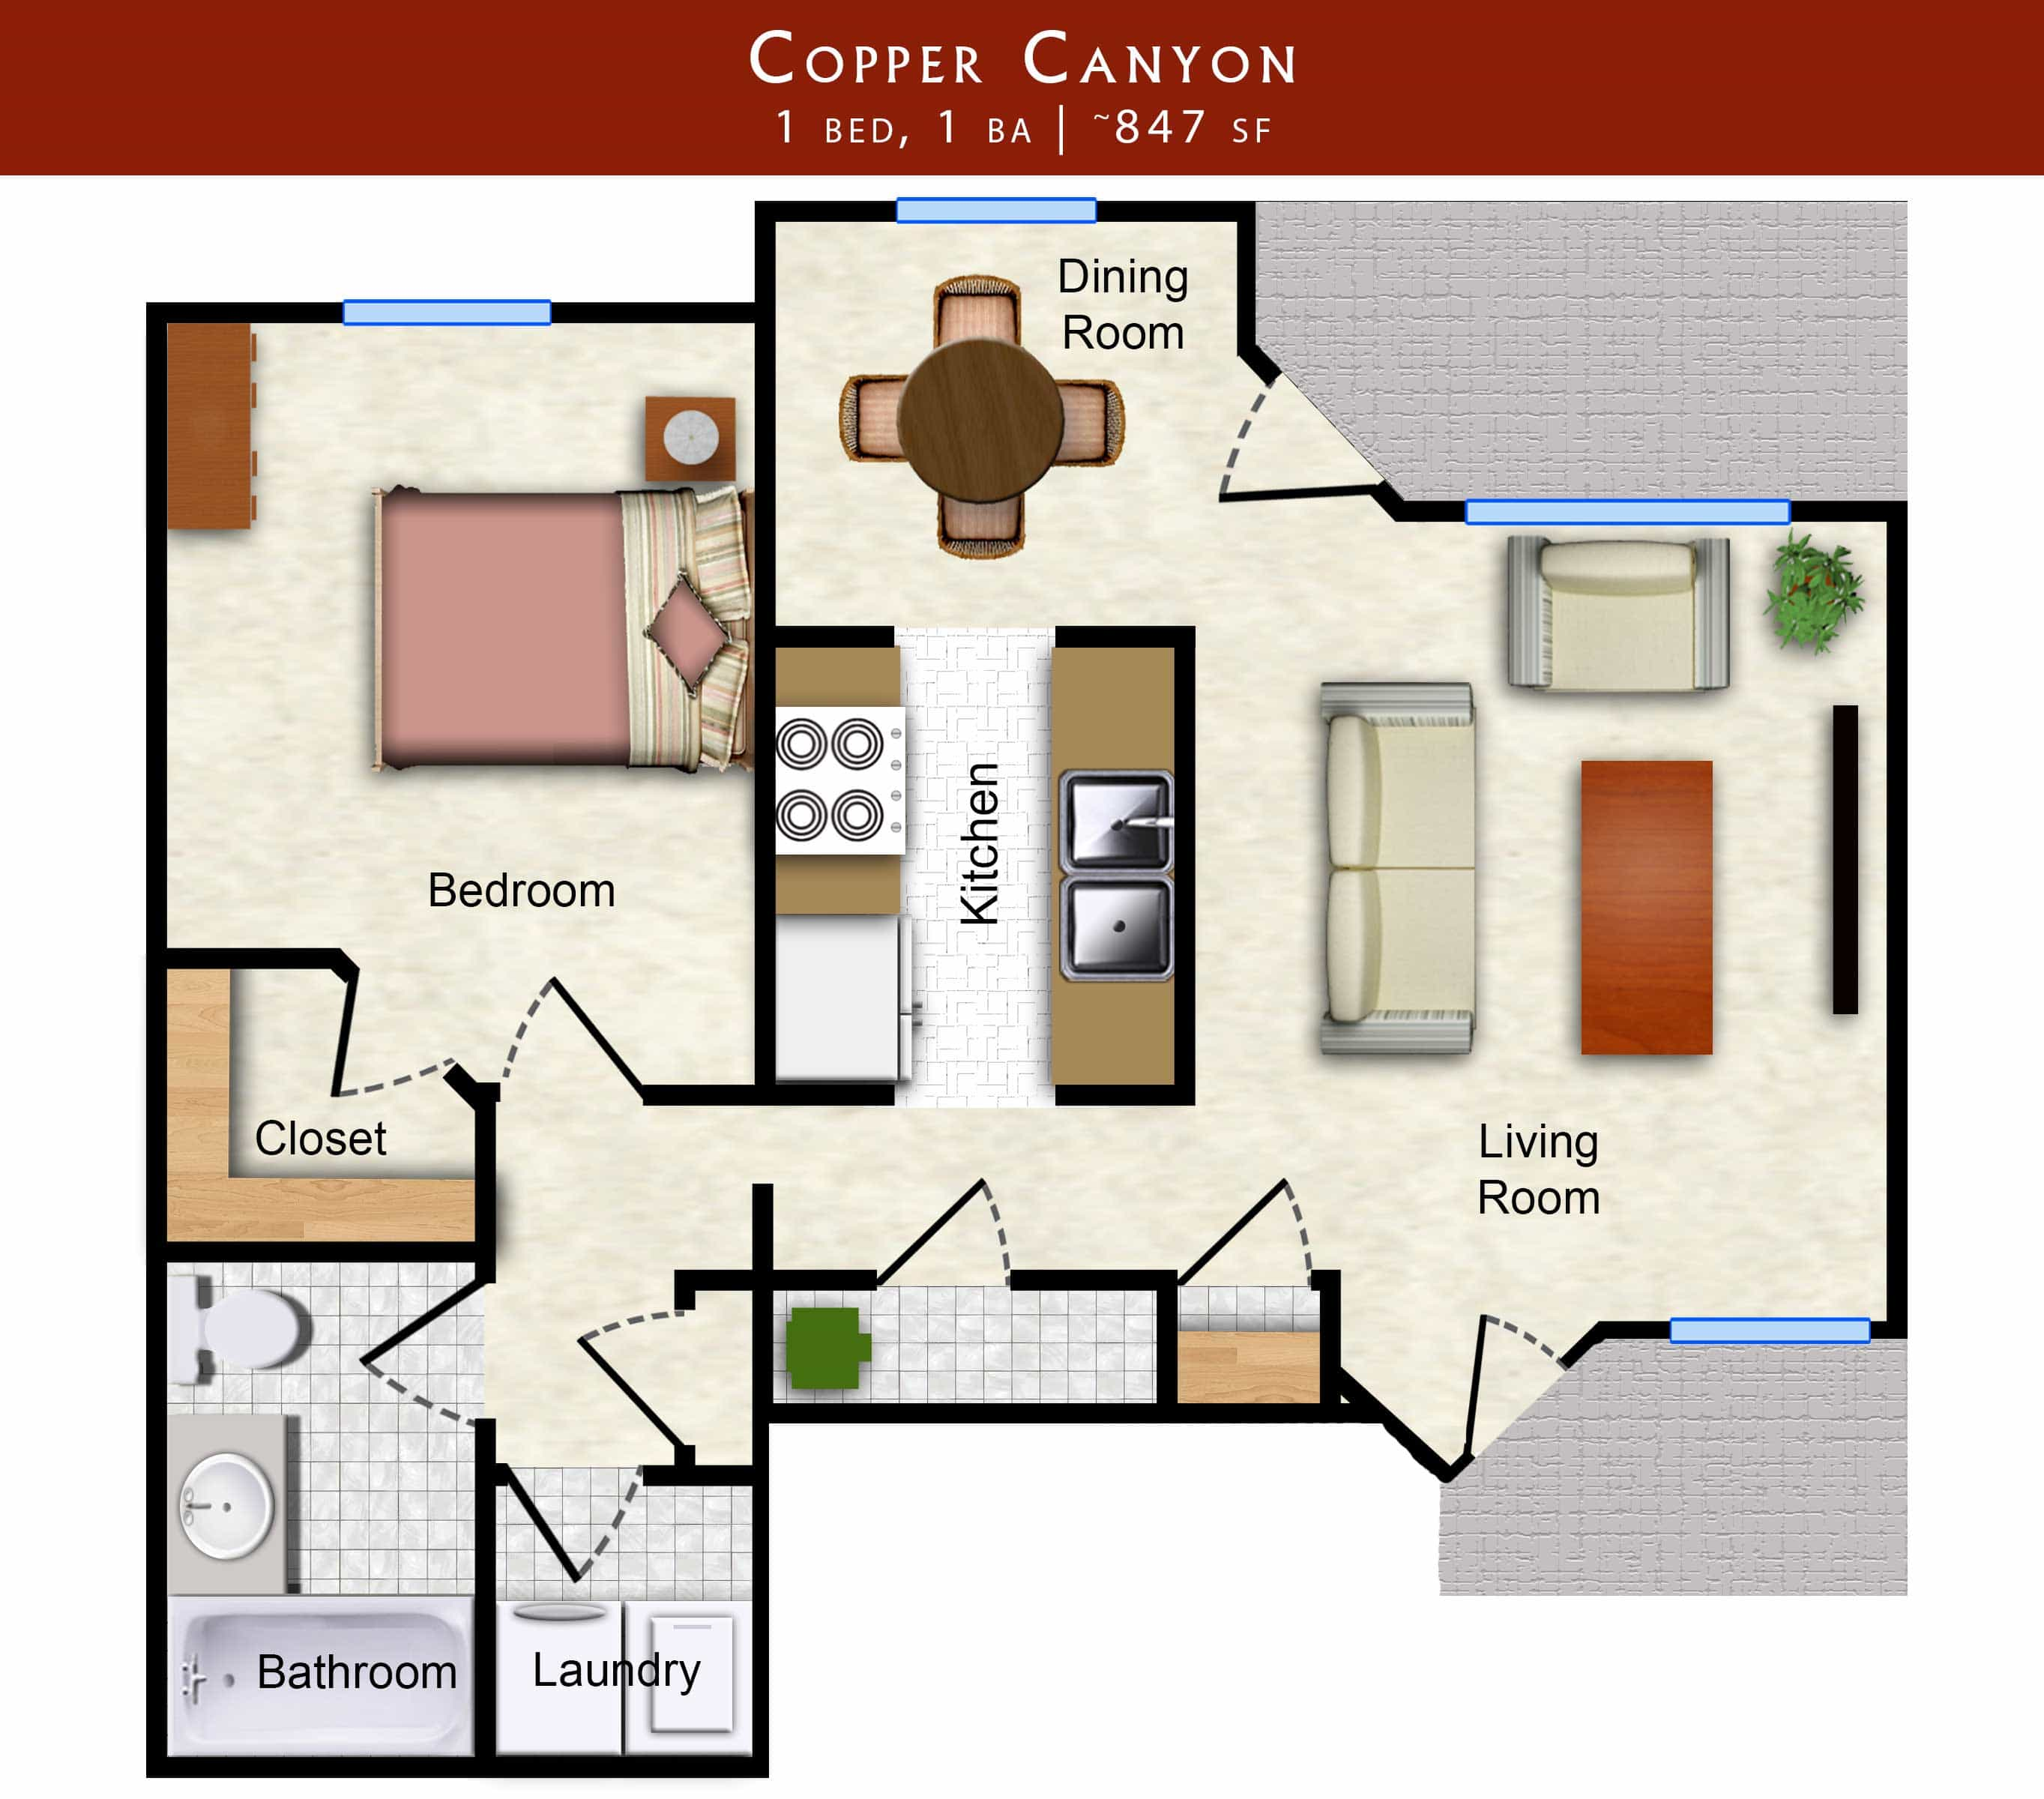 Copper Canyon: 1 bed, 1 bath 812 sq. ft. floor plan of Lawrence, KS apartment